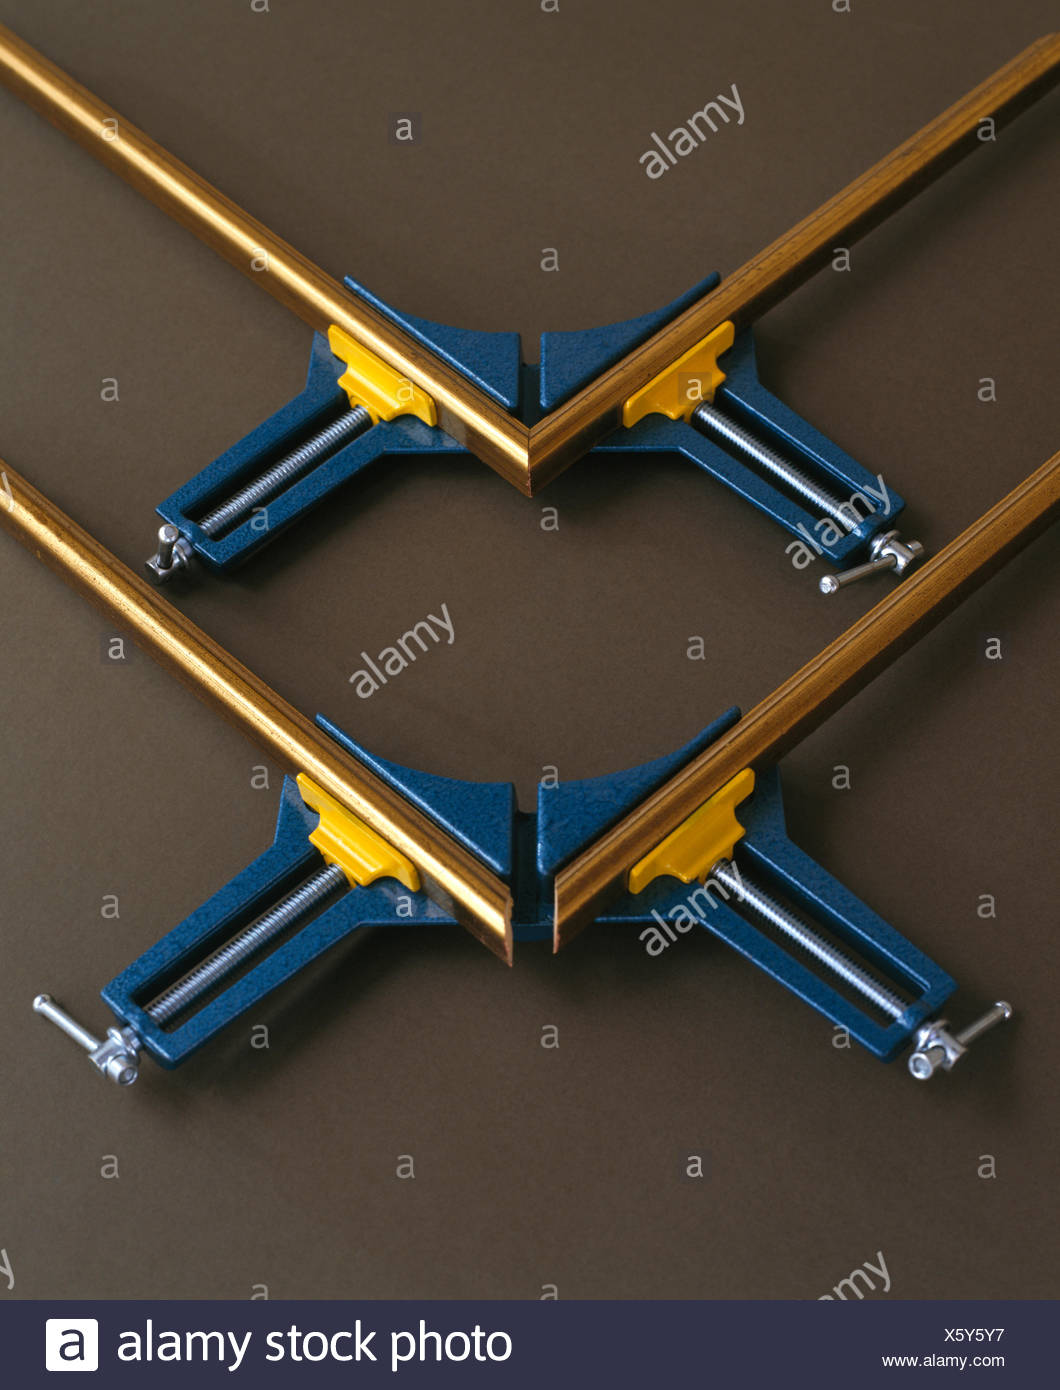 Close-up of gilt picture frames held in metal vices Stock Photo